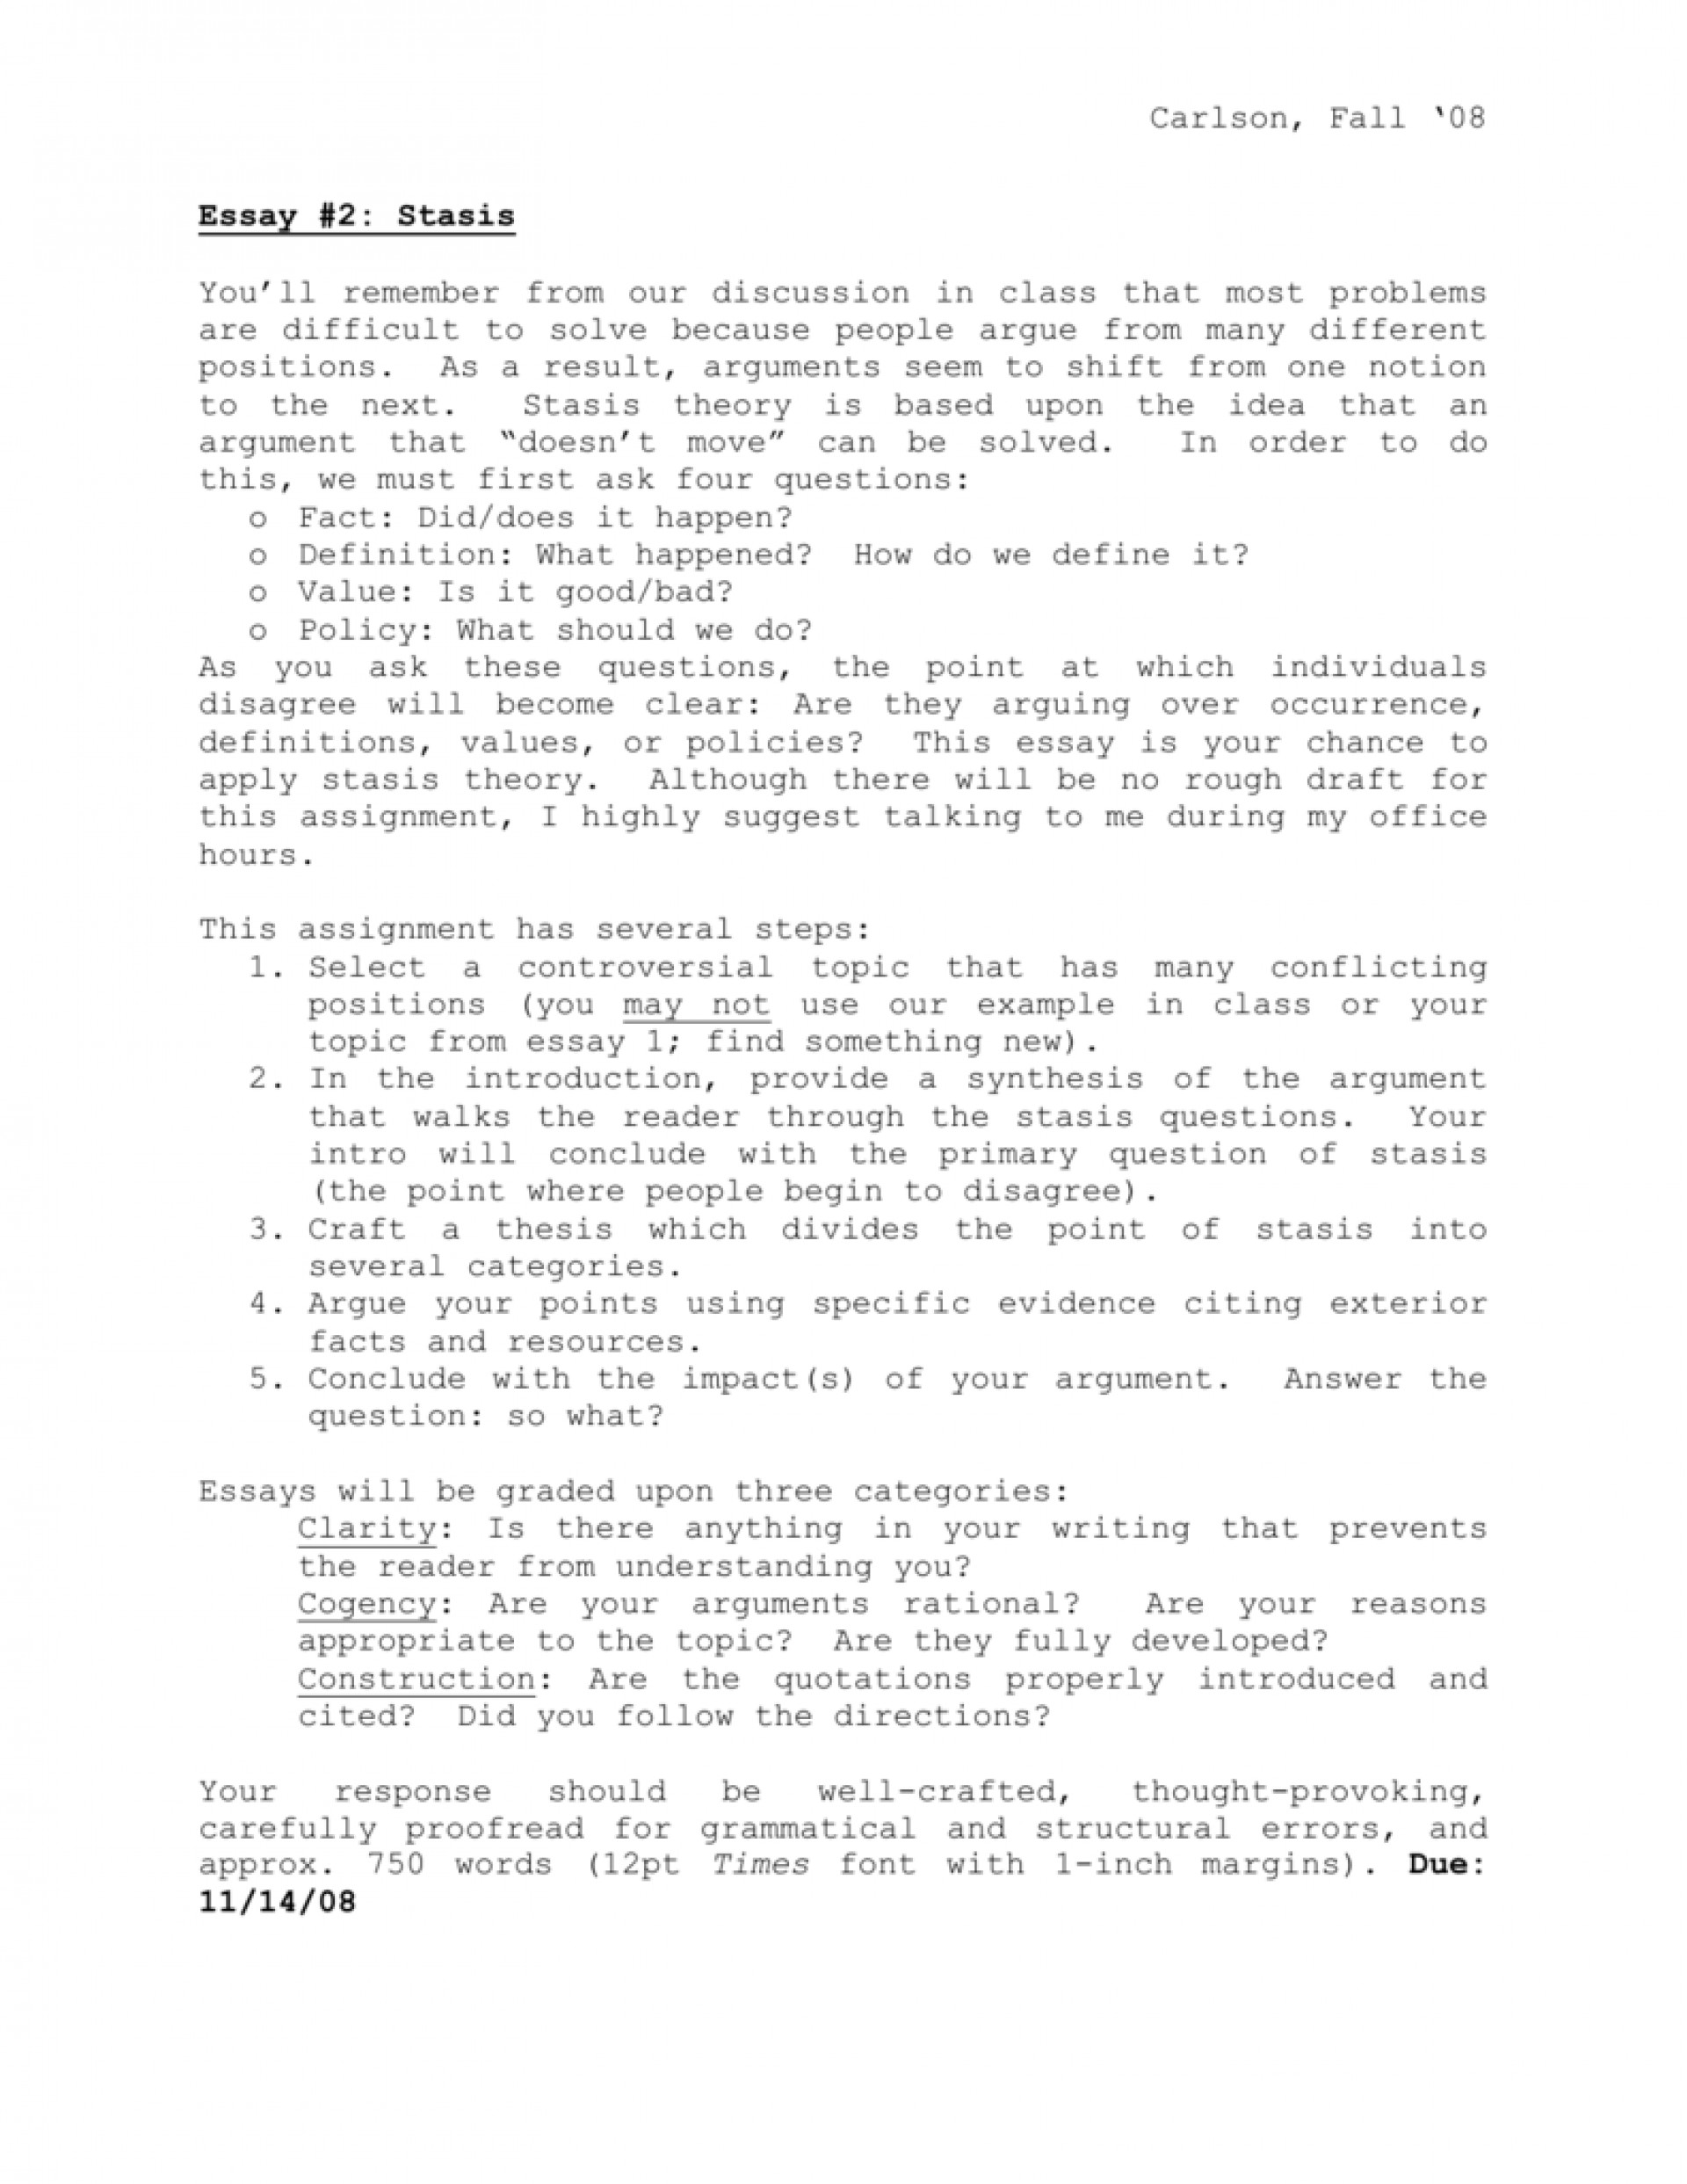 007 007882520 2 Word Essay Excellent 750 On Respect Double Spaced About Yourself 1920